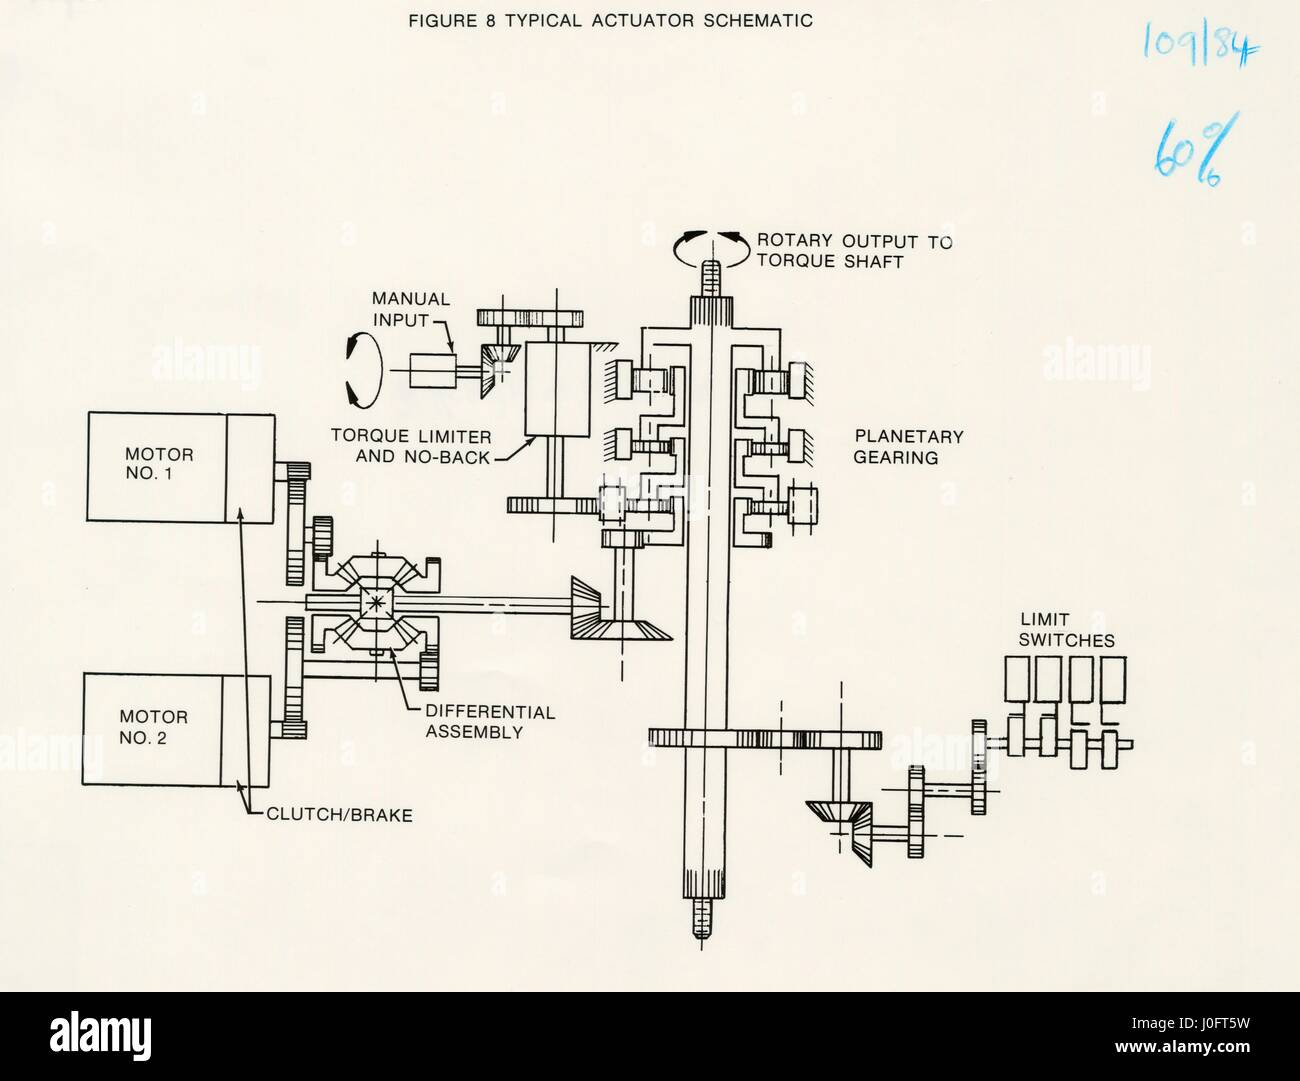 Diagram of a typical actuator schematic of the Space Shuttle ... on